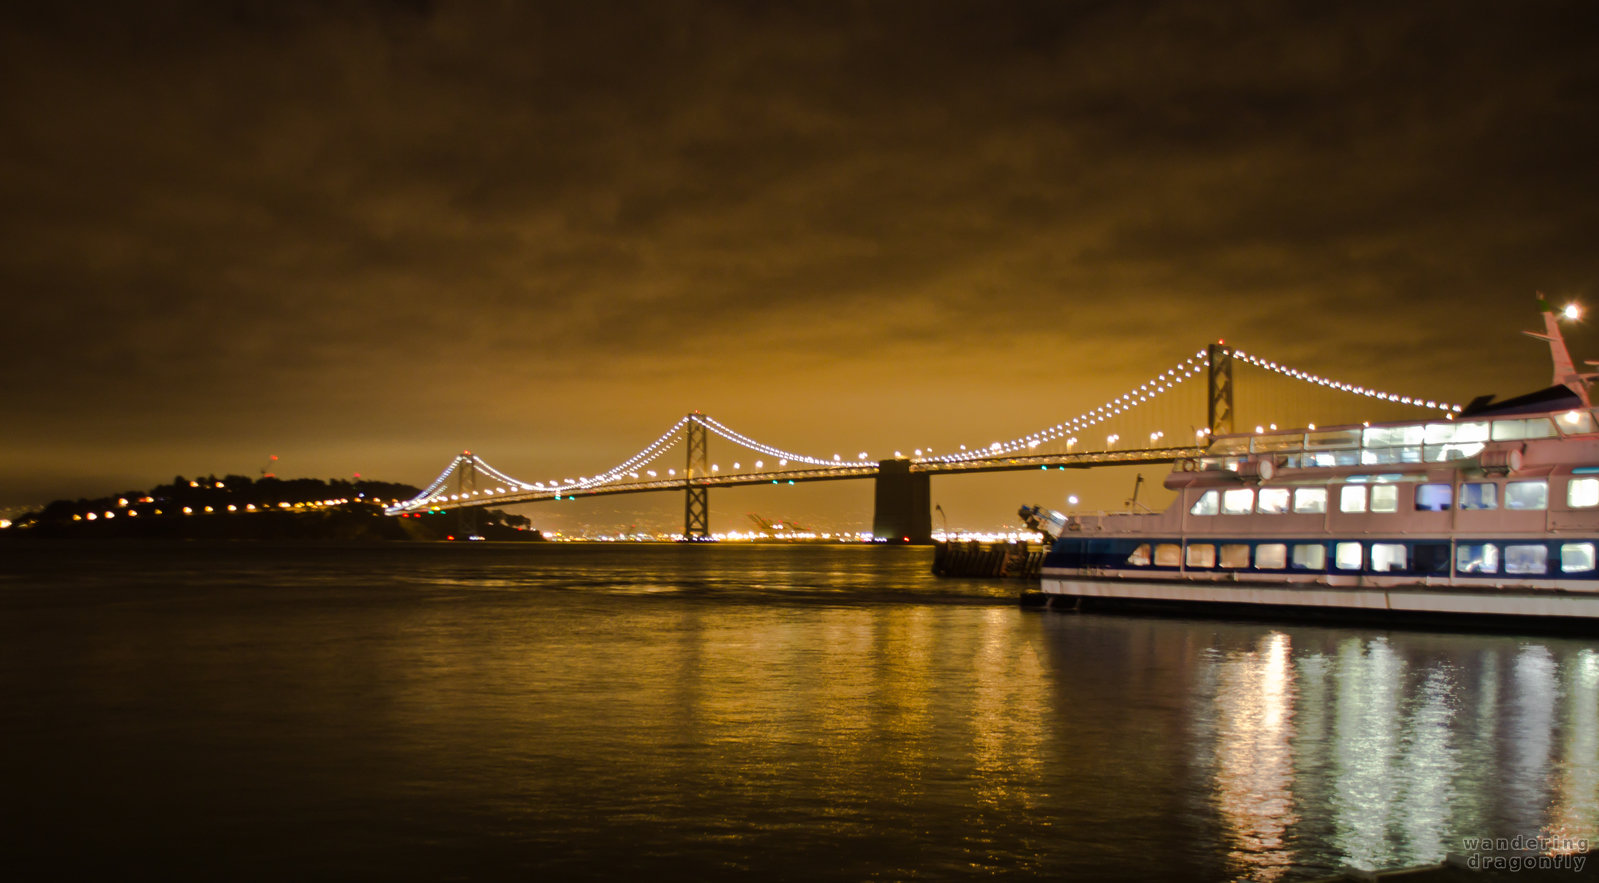 Ferry is preparing to leave -- bridge, night, ship, water